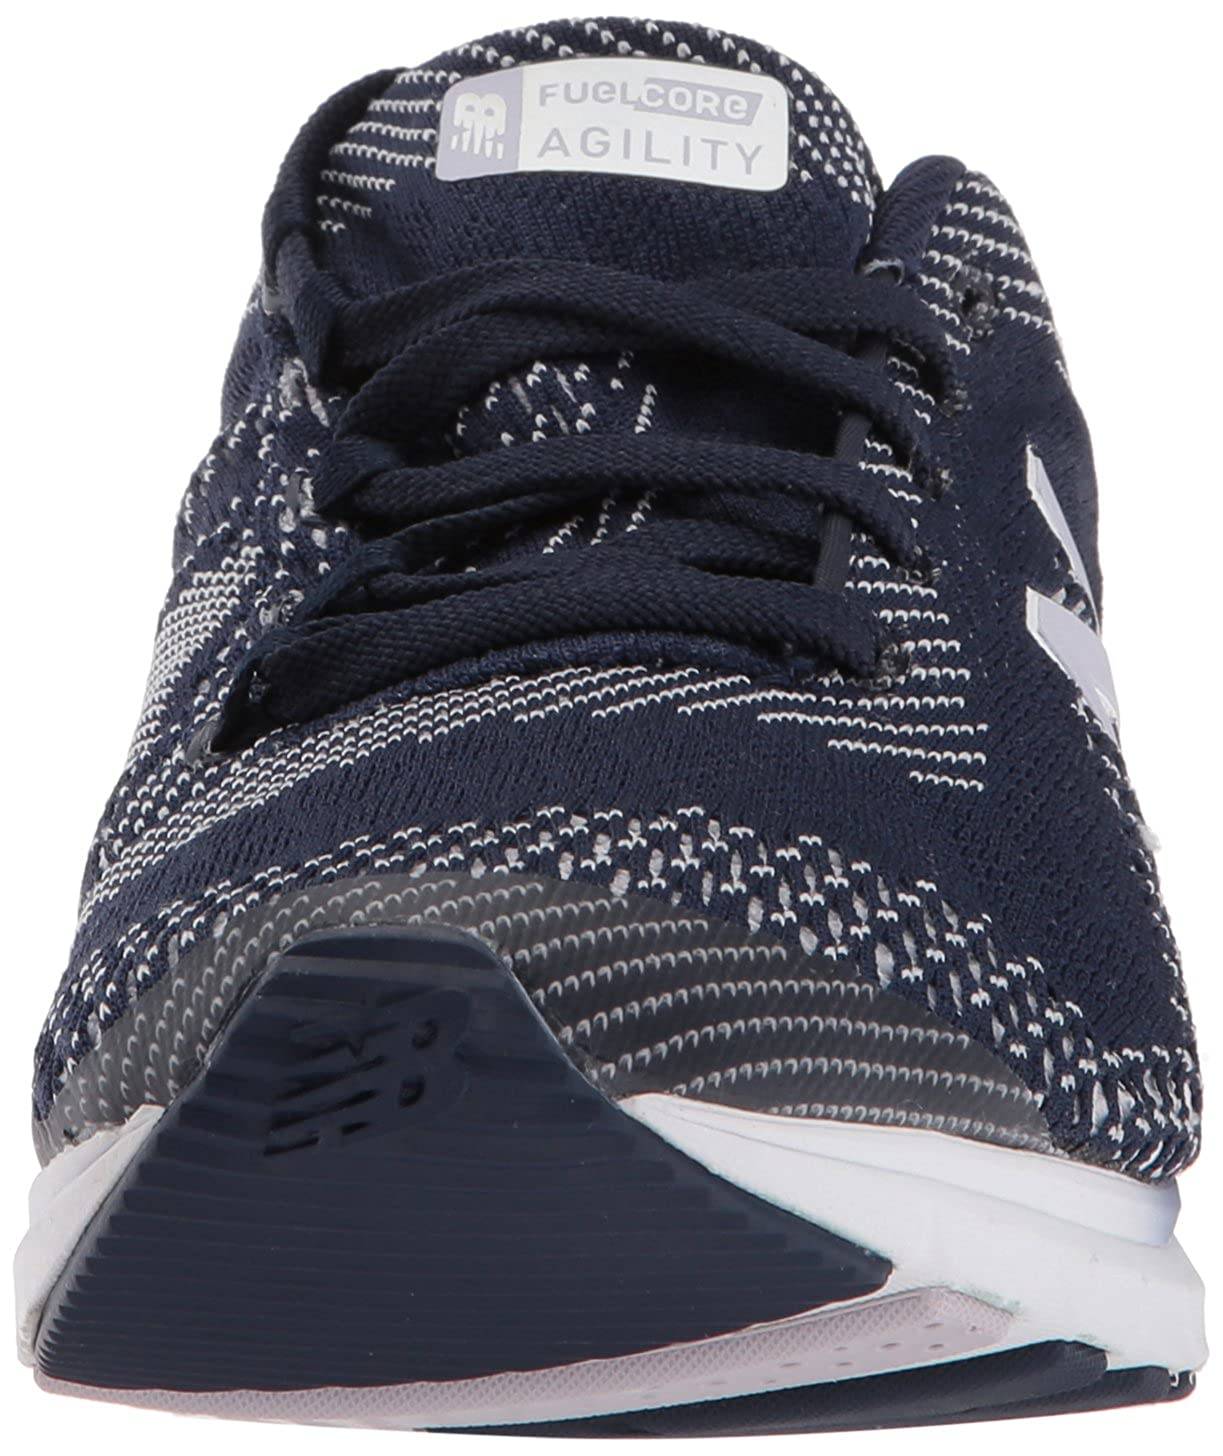 New Balance FuelCore FuelCore FuelCore Agility V2 Woherren Training Schuh - SS18 065cf7